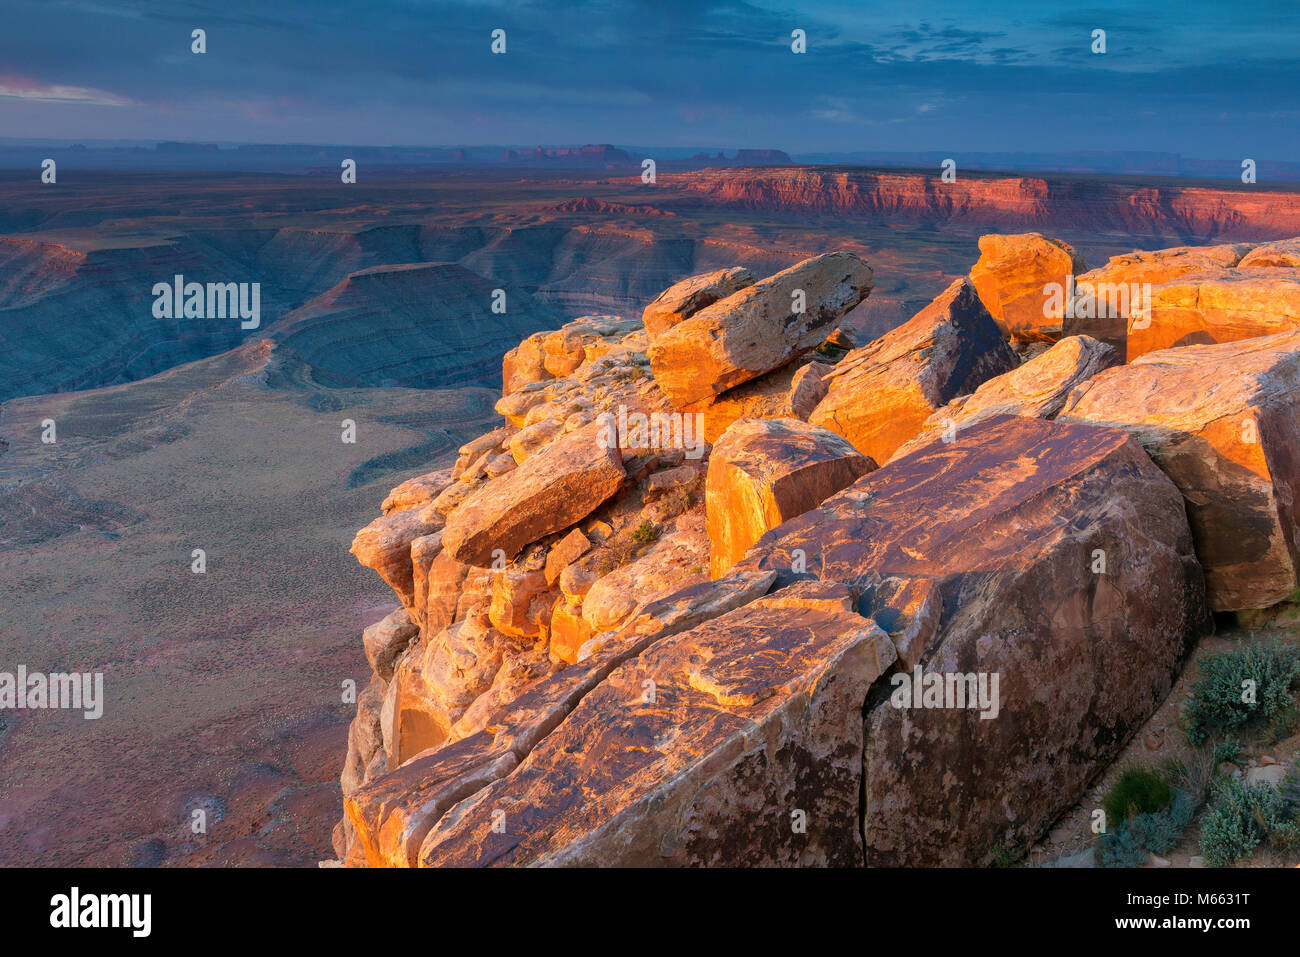 Sunrise, Muley Point, Monument Valley, Glen Canyon National Recreation Area, Utah - Stock Image